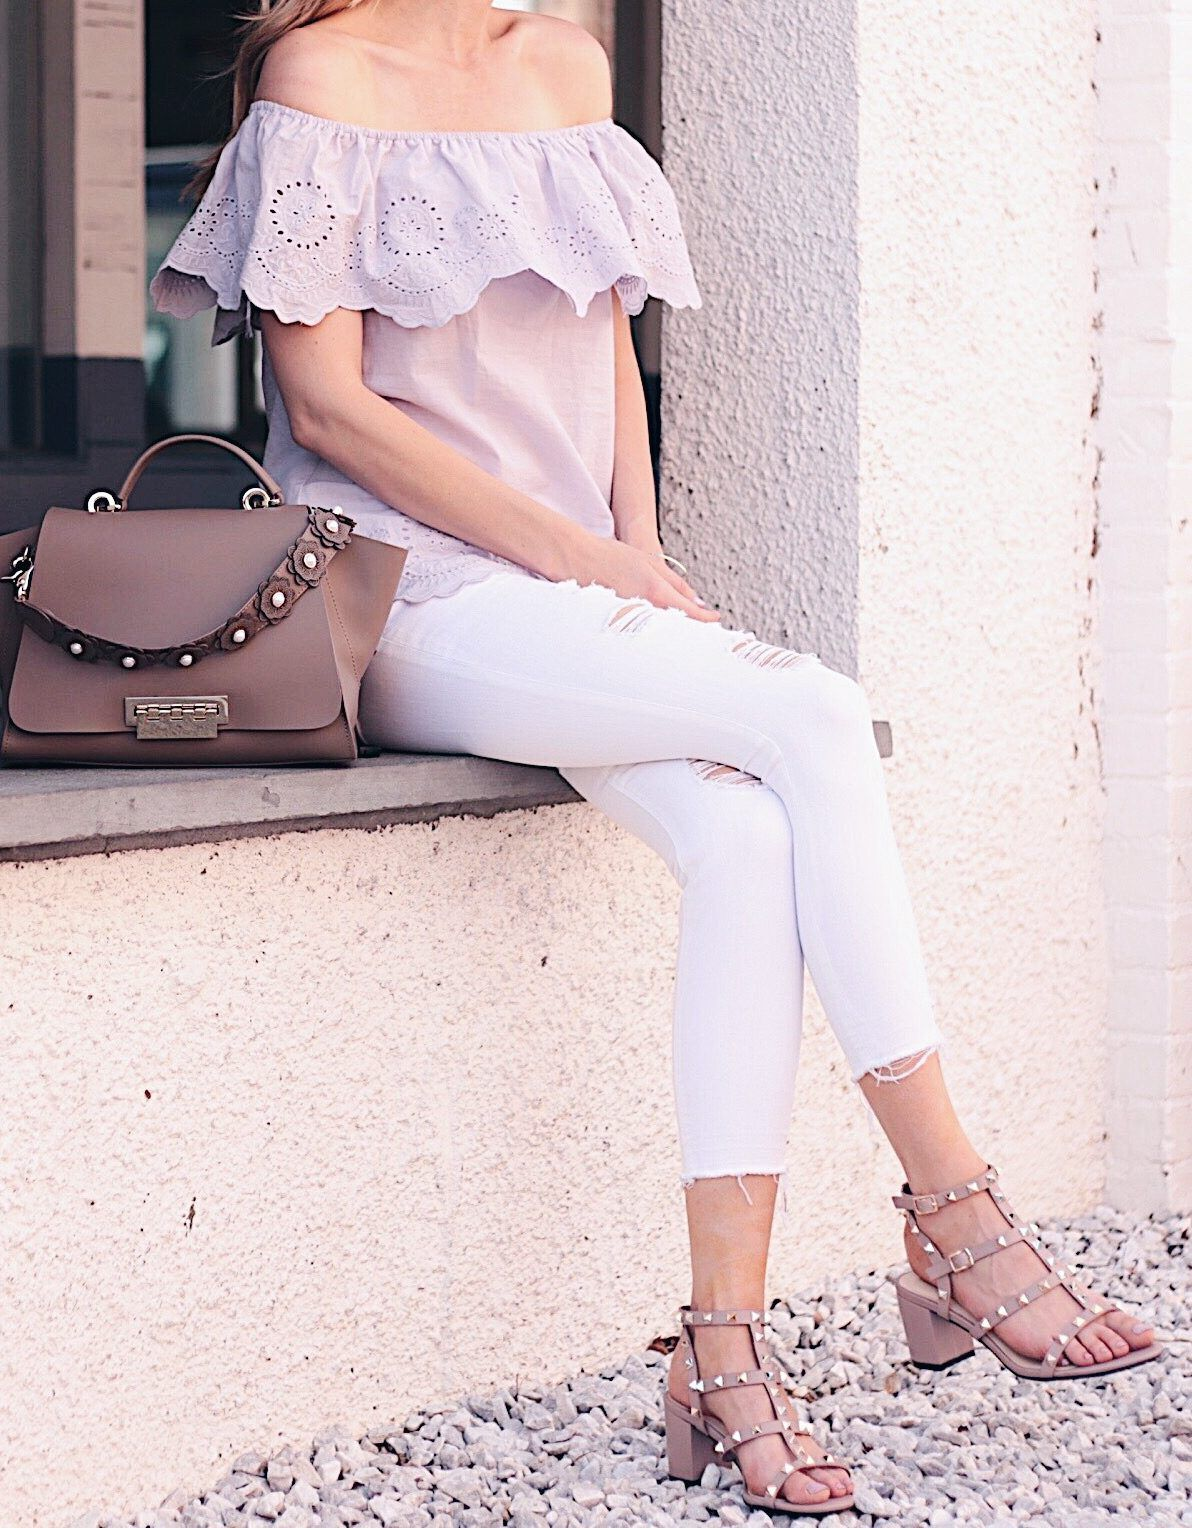 ae4feb75a0d summer outfit ideas  purple eyelet off the shoulder top with distressed  white cropped jeans and valentino rockstud block heel dupes